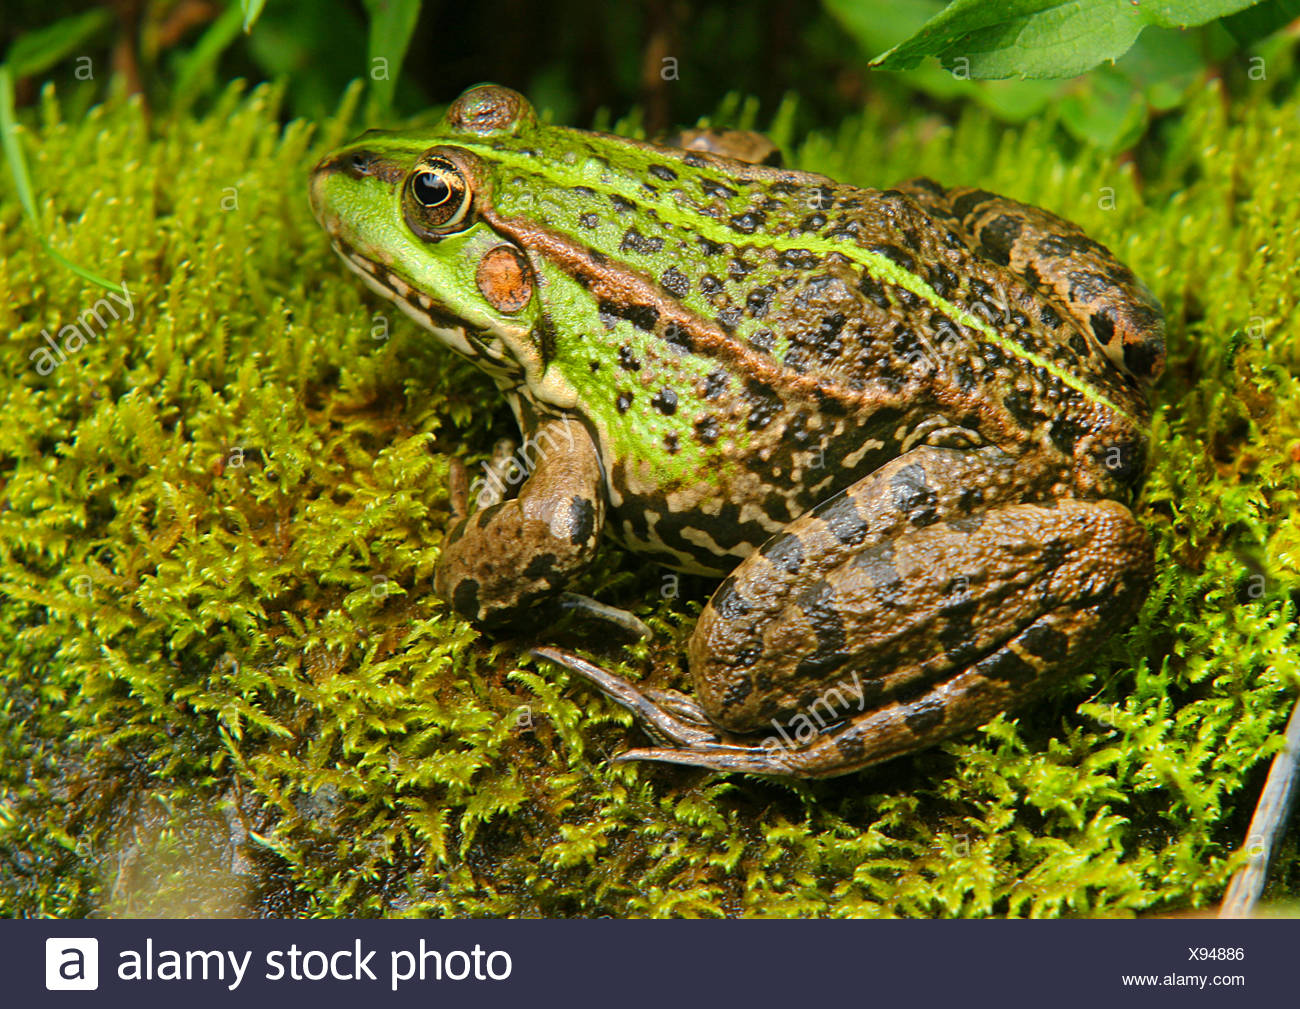 European edible frog, common edible frog (Rana kl. esculenta, Rana esculenta, Pelophylax esculentus), sits on moss, Germany - Stock Image